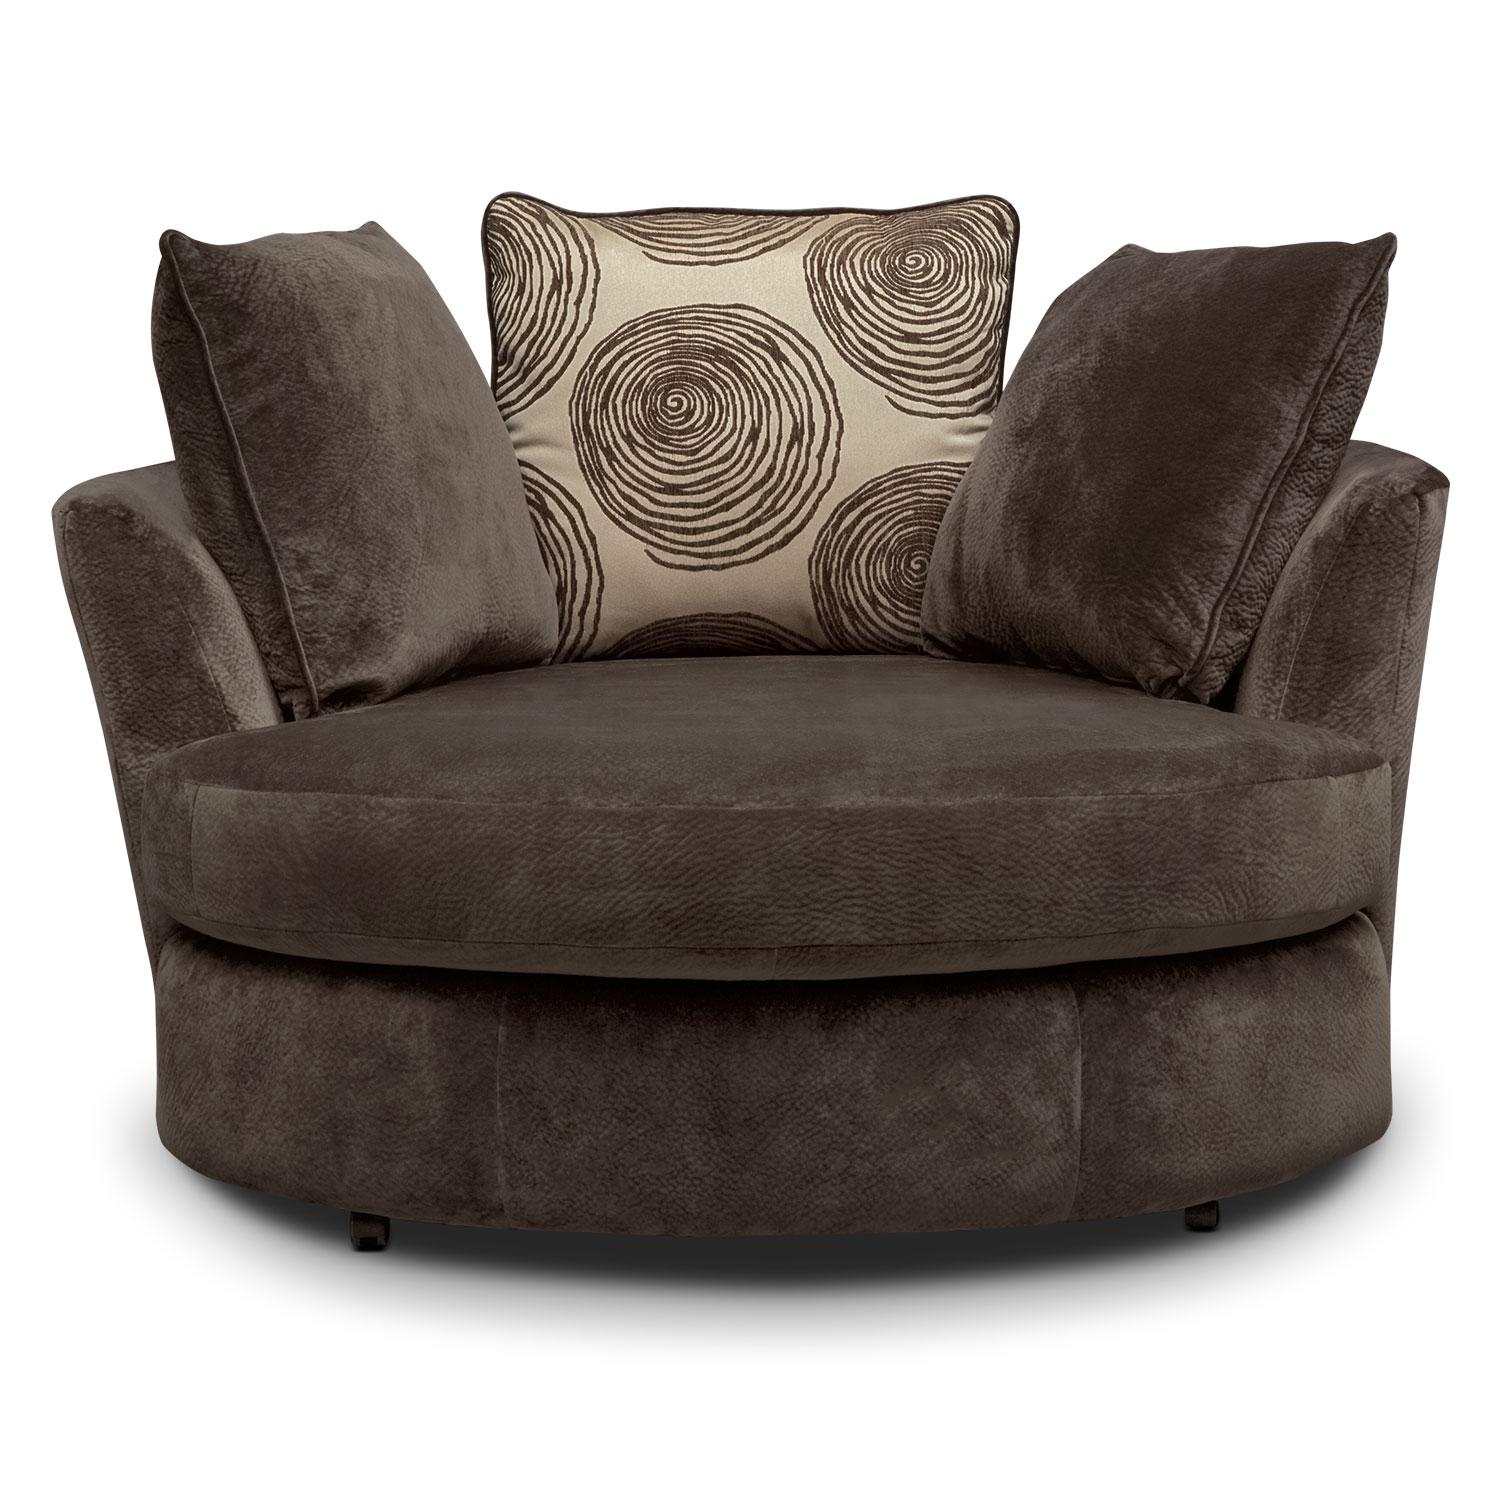 Cordelle Swivel Chair – Chocolate | Value City Furniture Inside Sofa With Swivel Chair (View 3 of 20)